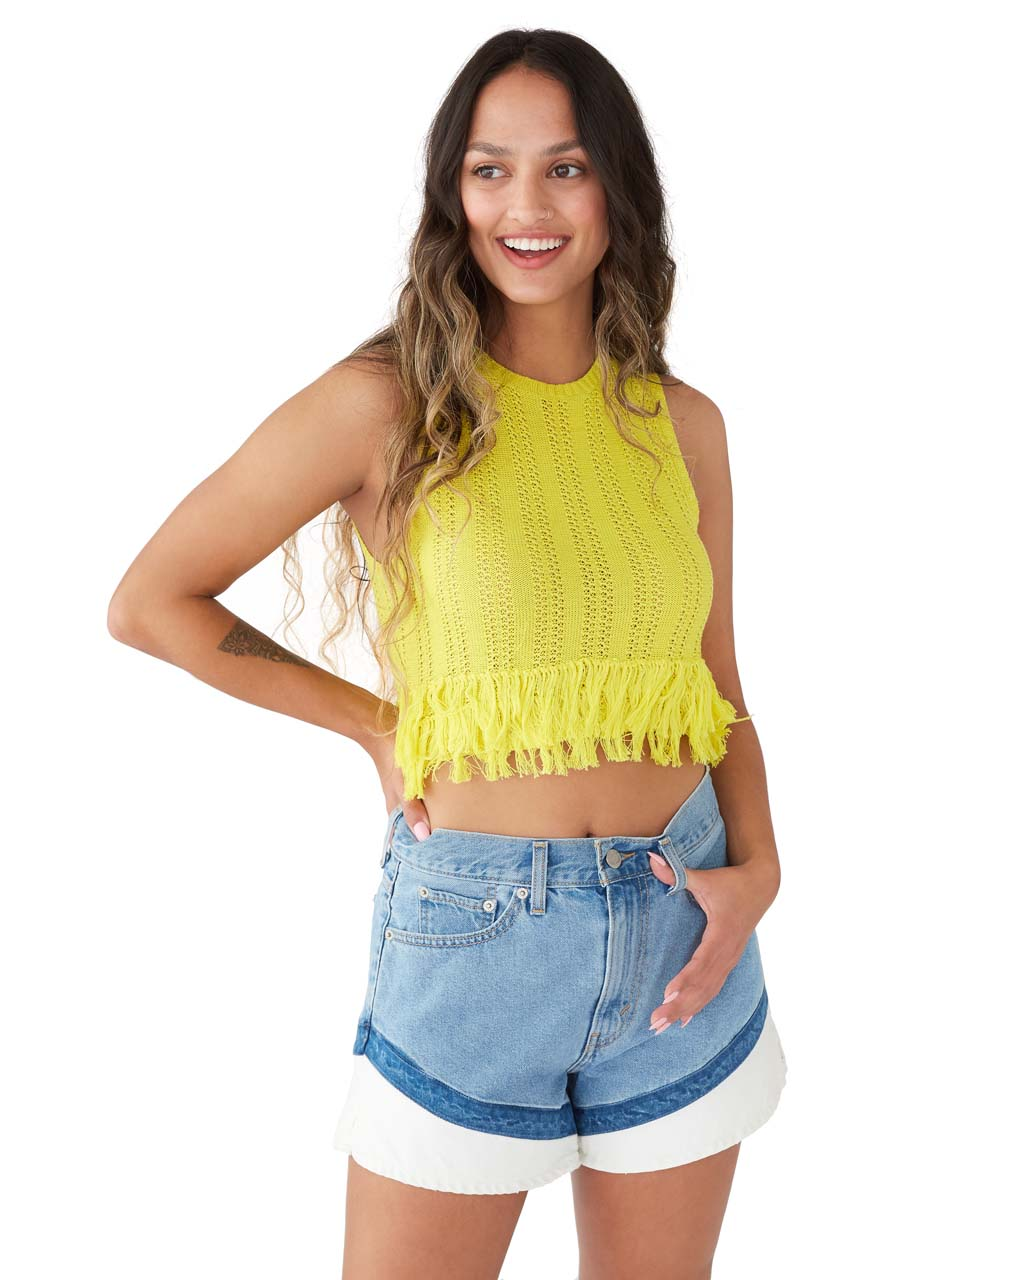 brunette model shown wearing a yellow fringe tank with blue jean shorts